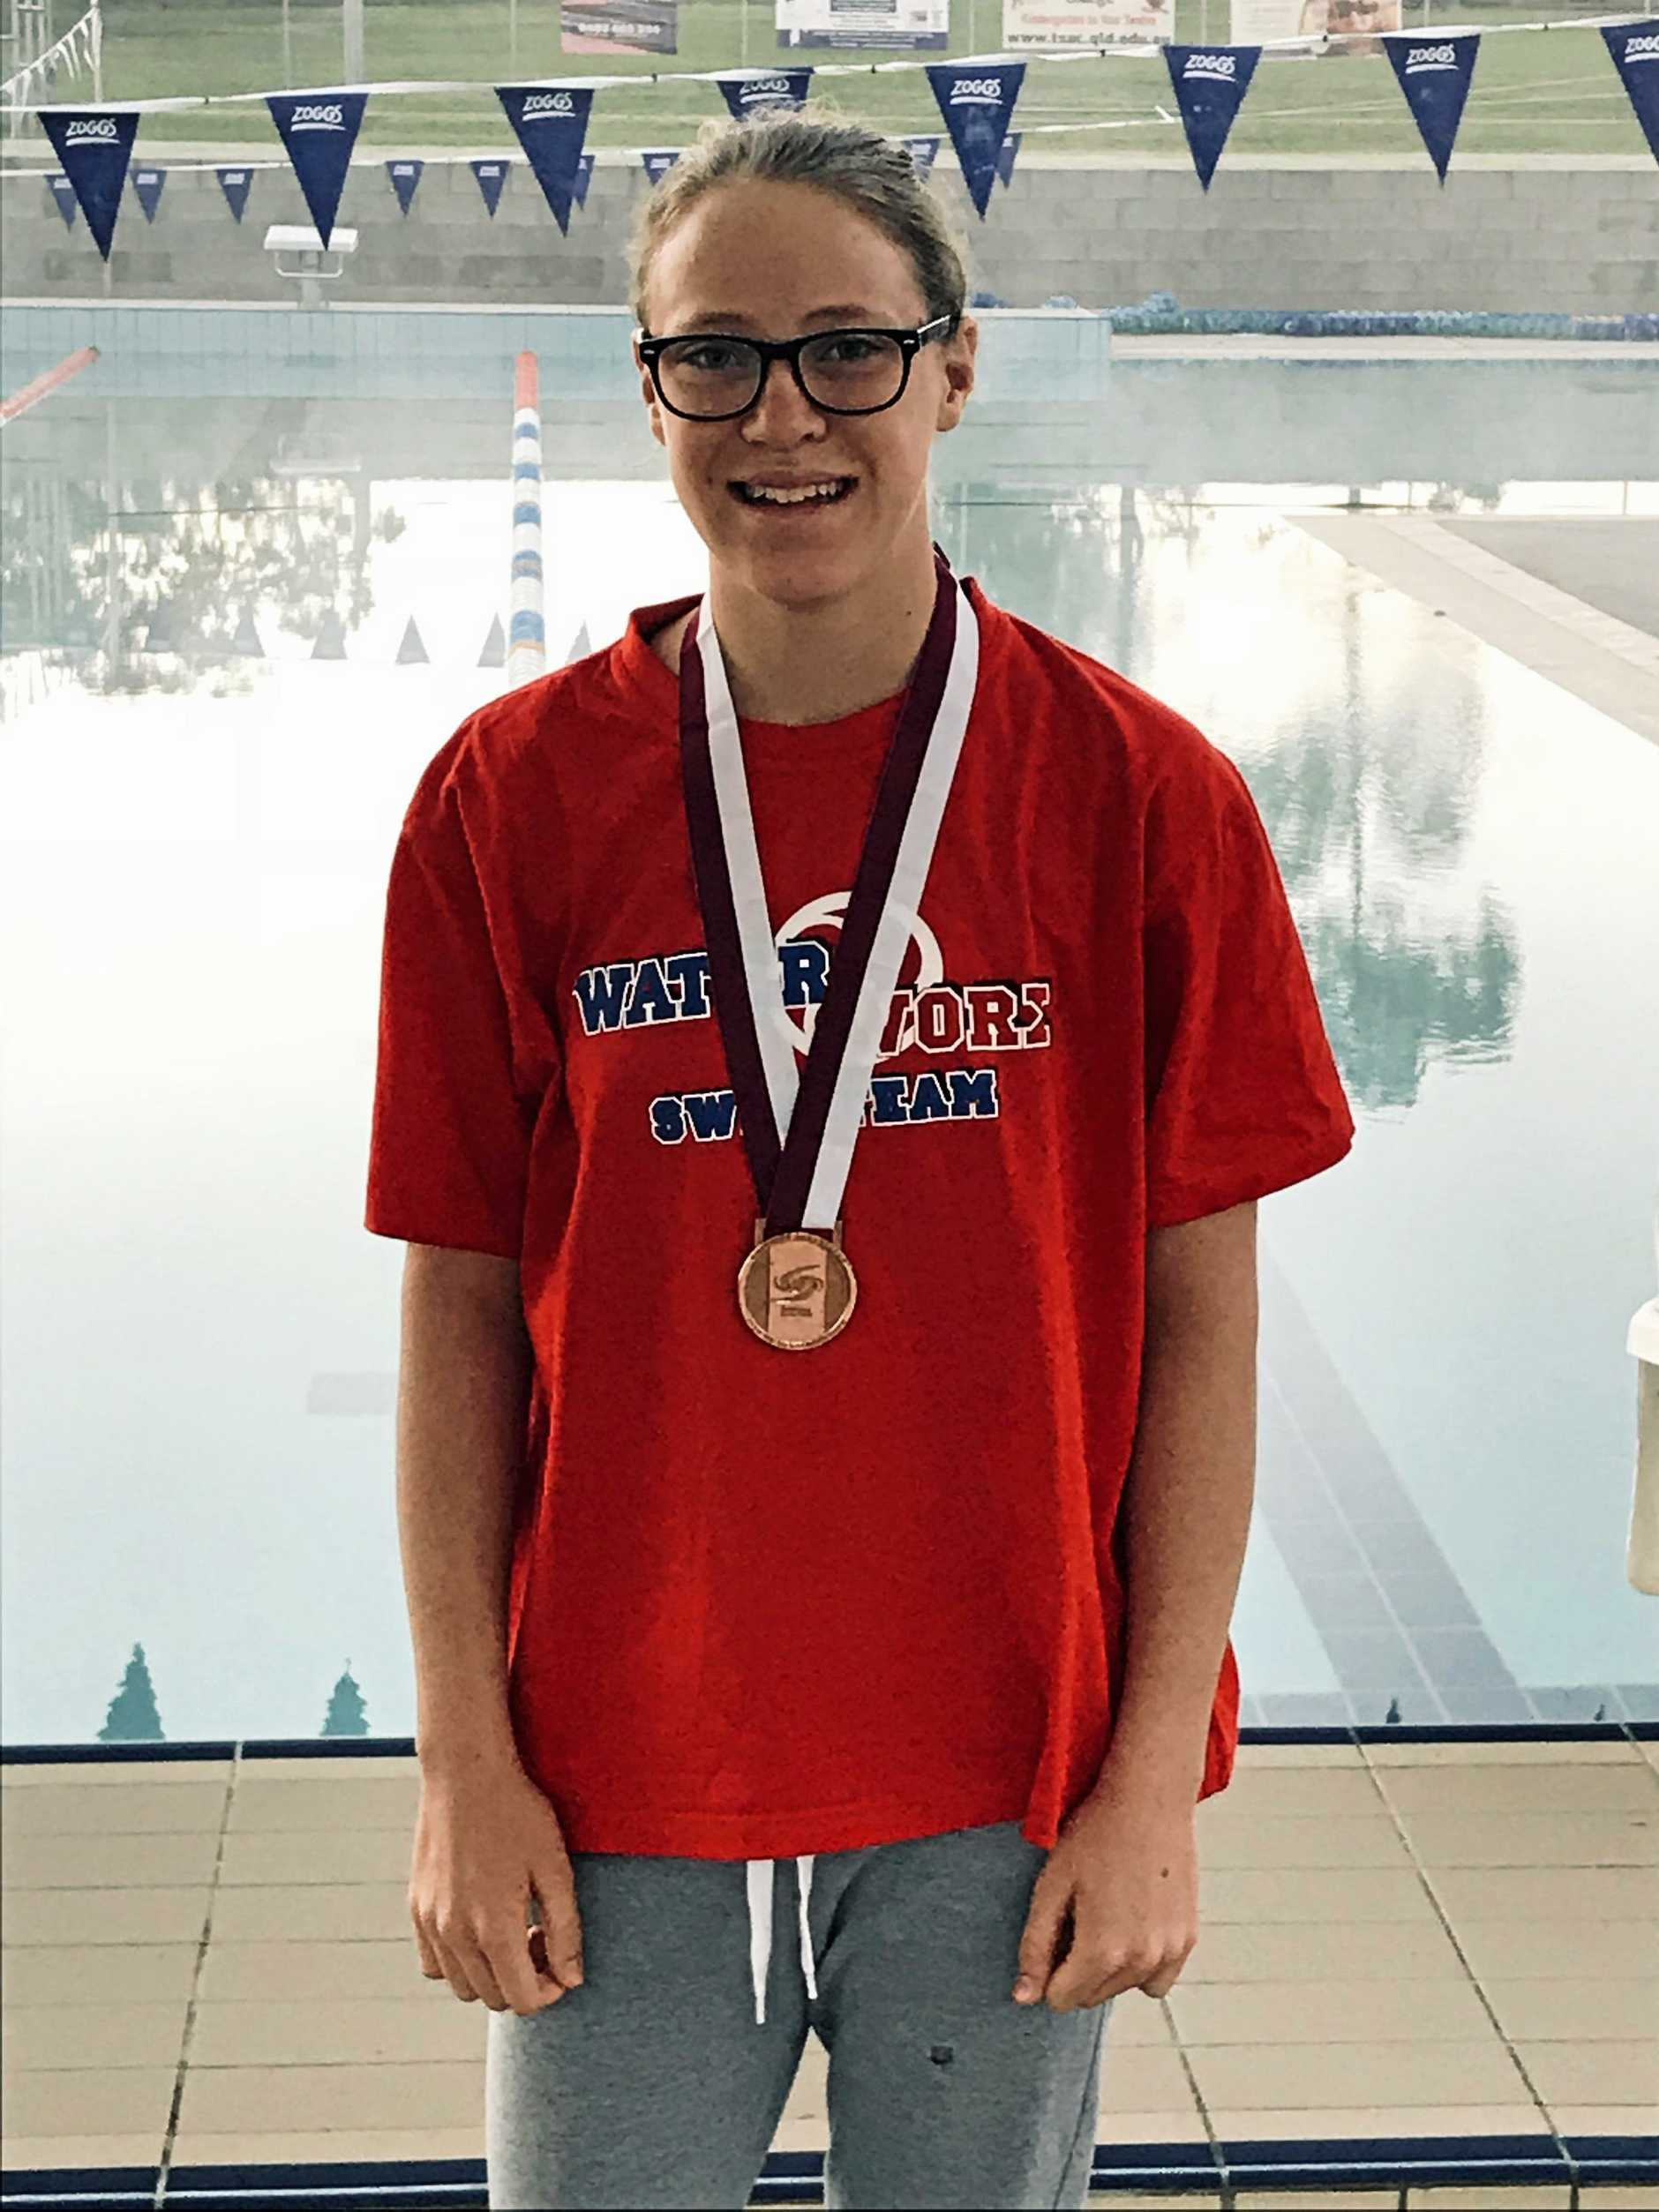 Waterworx swimmer Phoebe Sweeney won a bronze medal in her 5km event at the state open water championships at Lake Kawana.